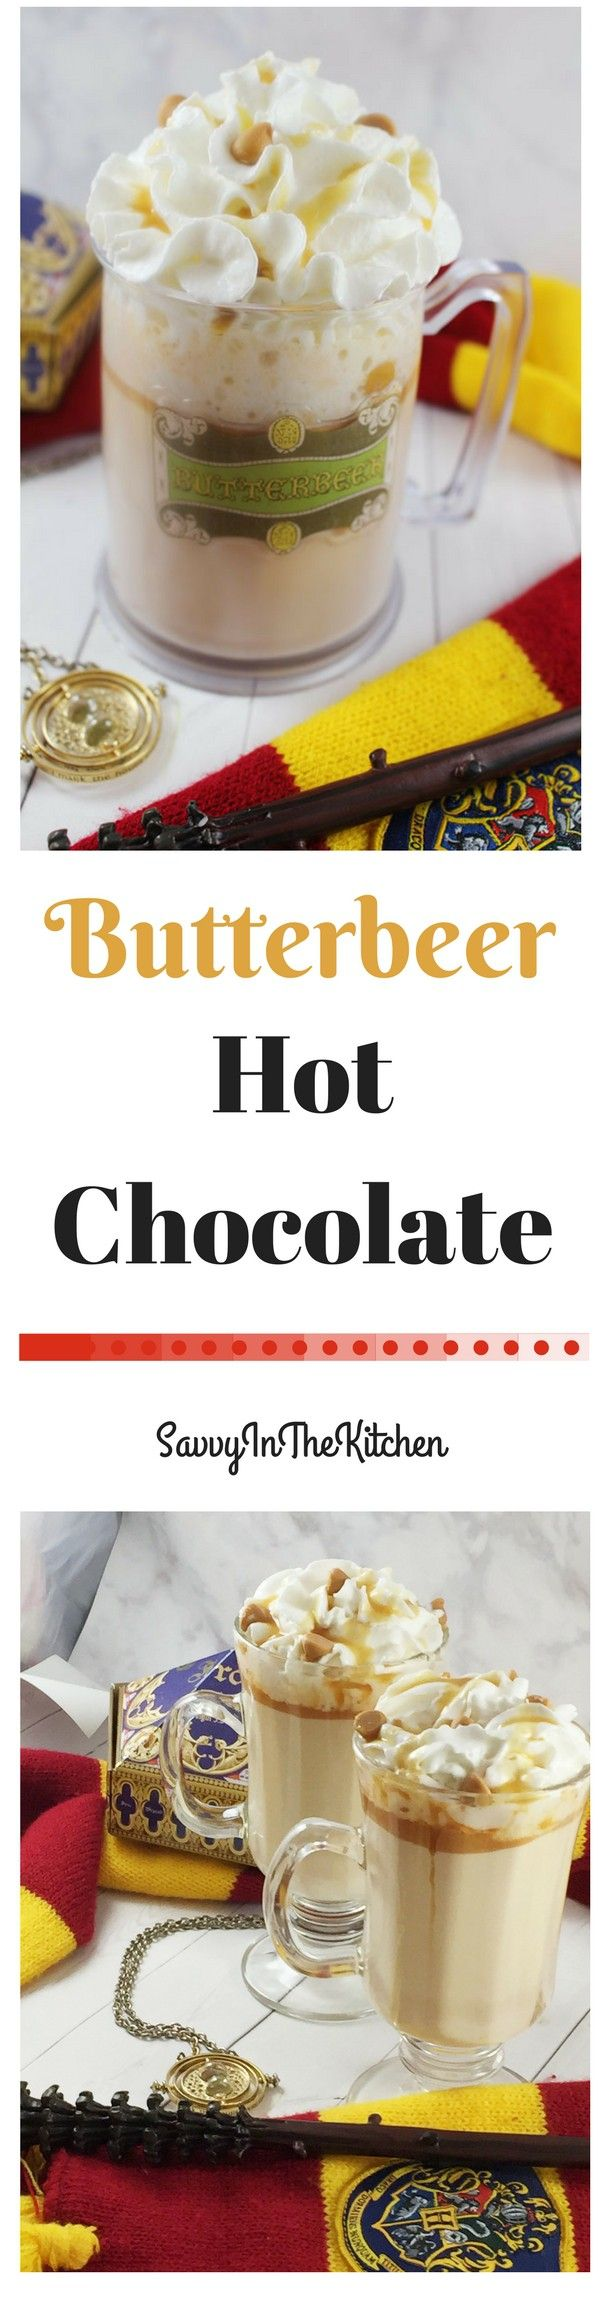 butterbeer-hot-chocolate-yum